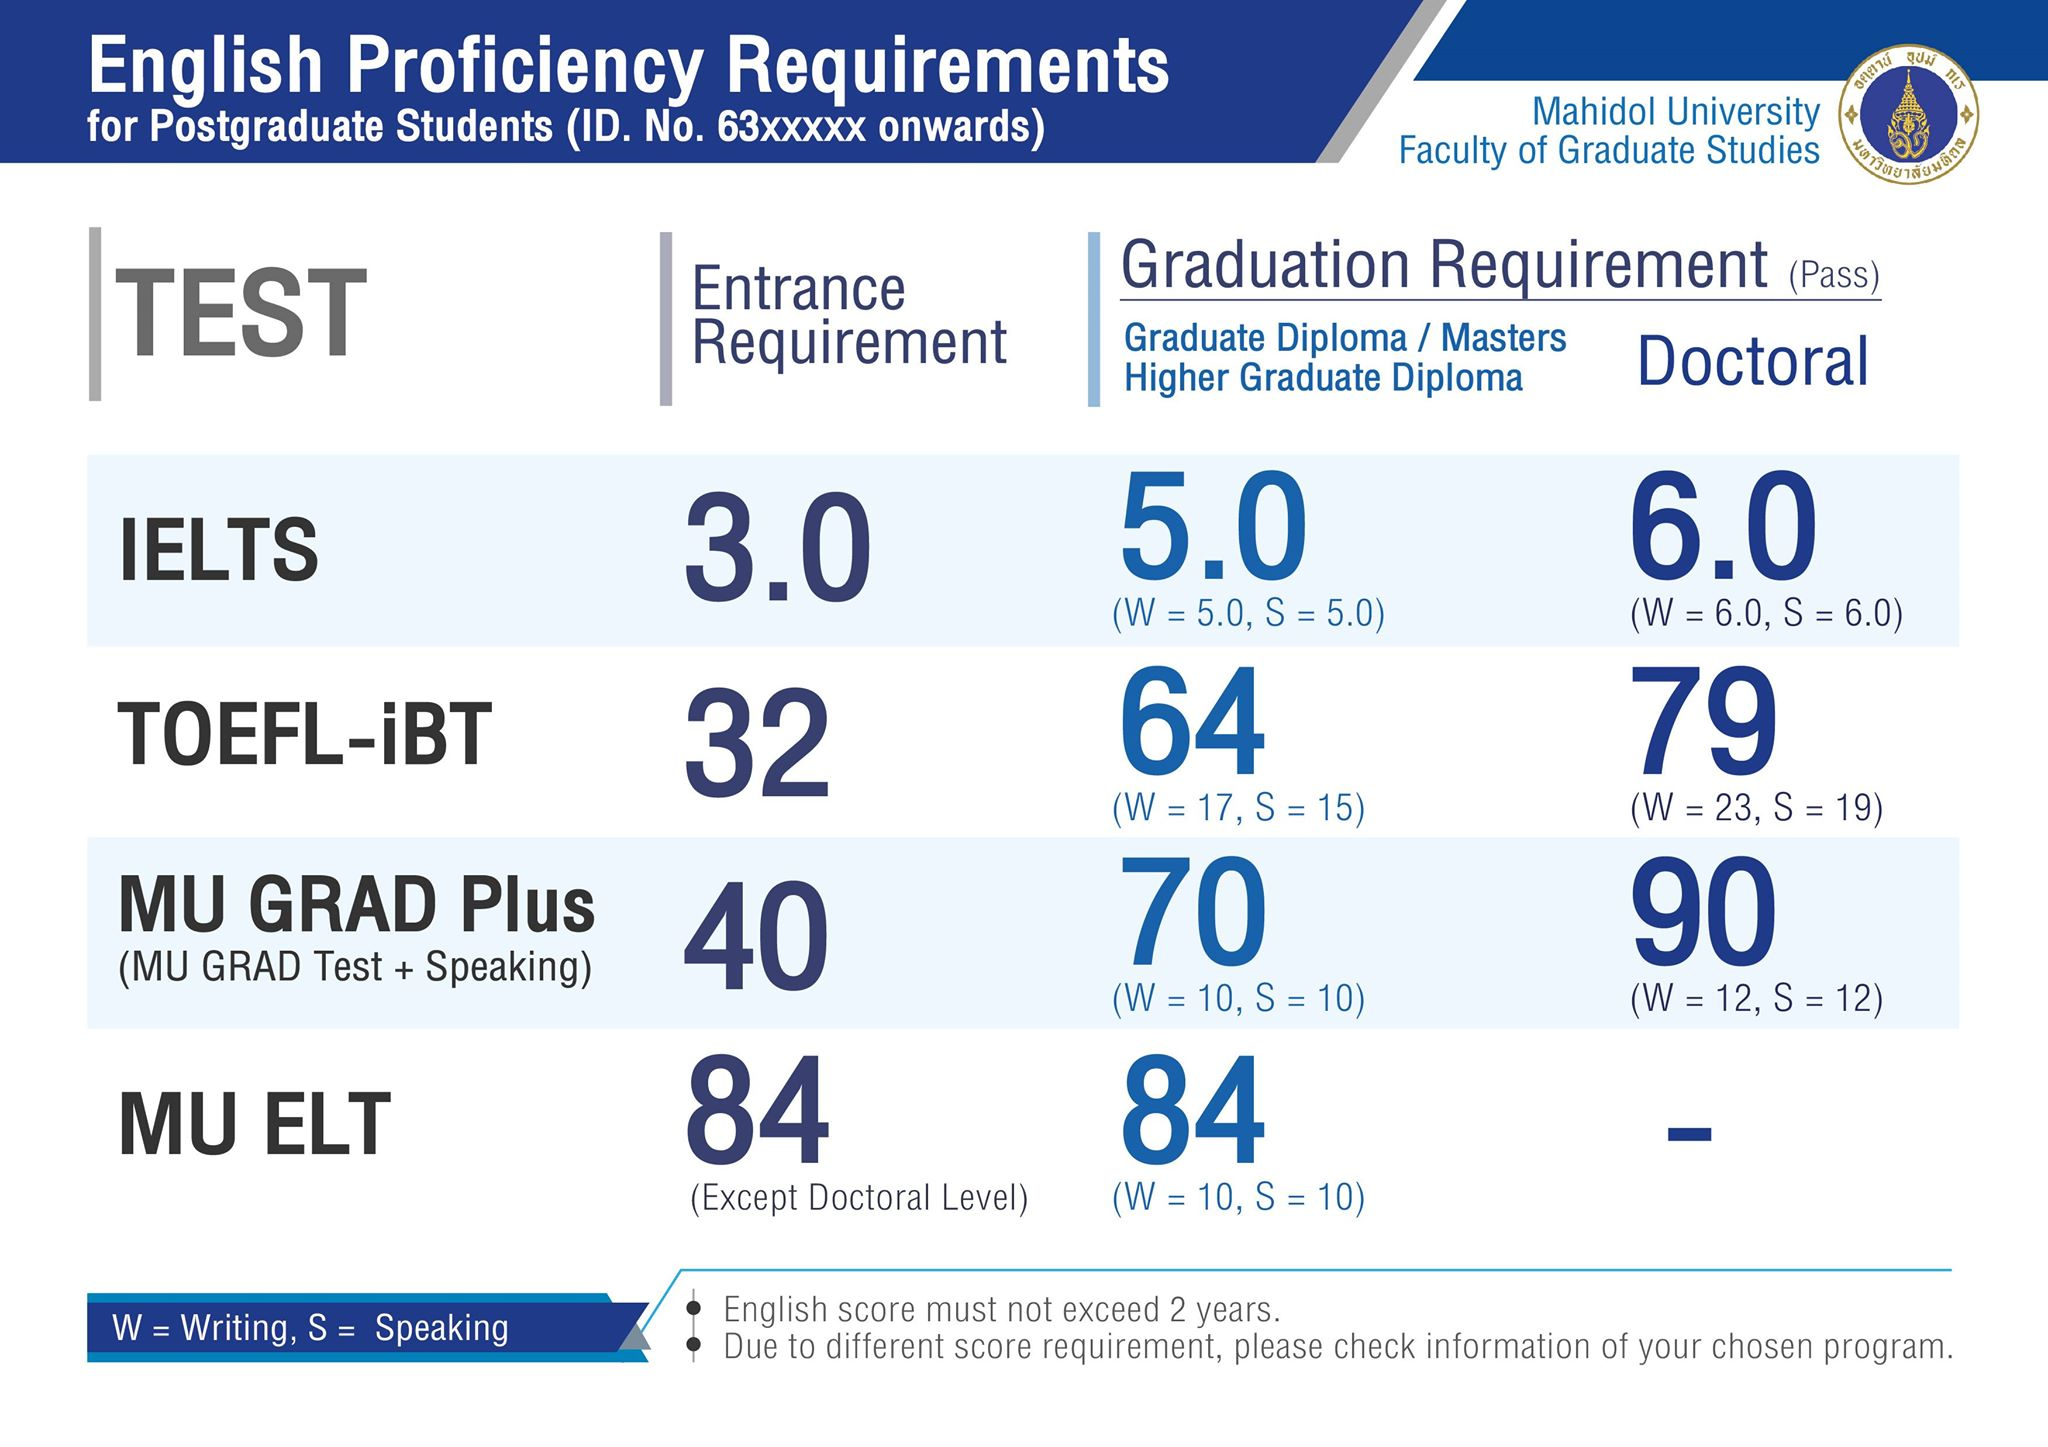 picture of english proficiency requirements